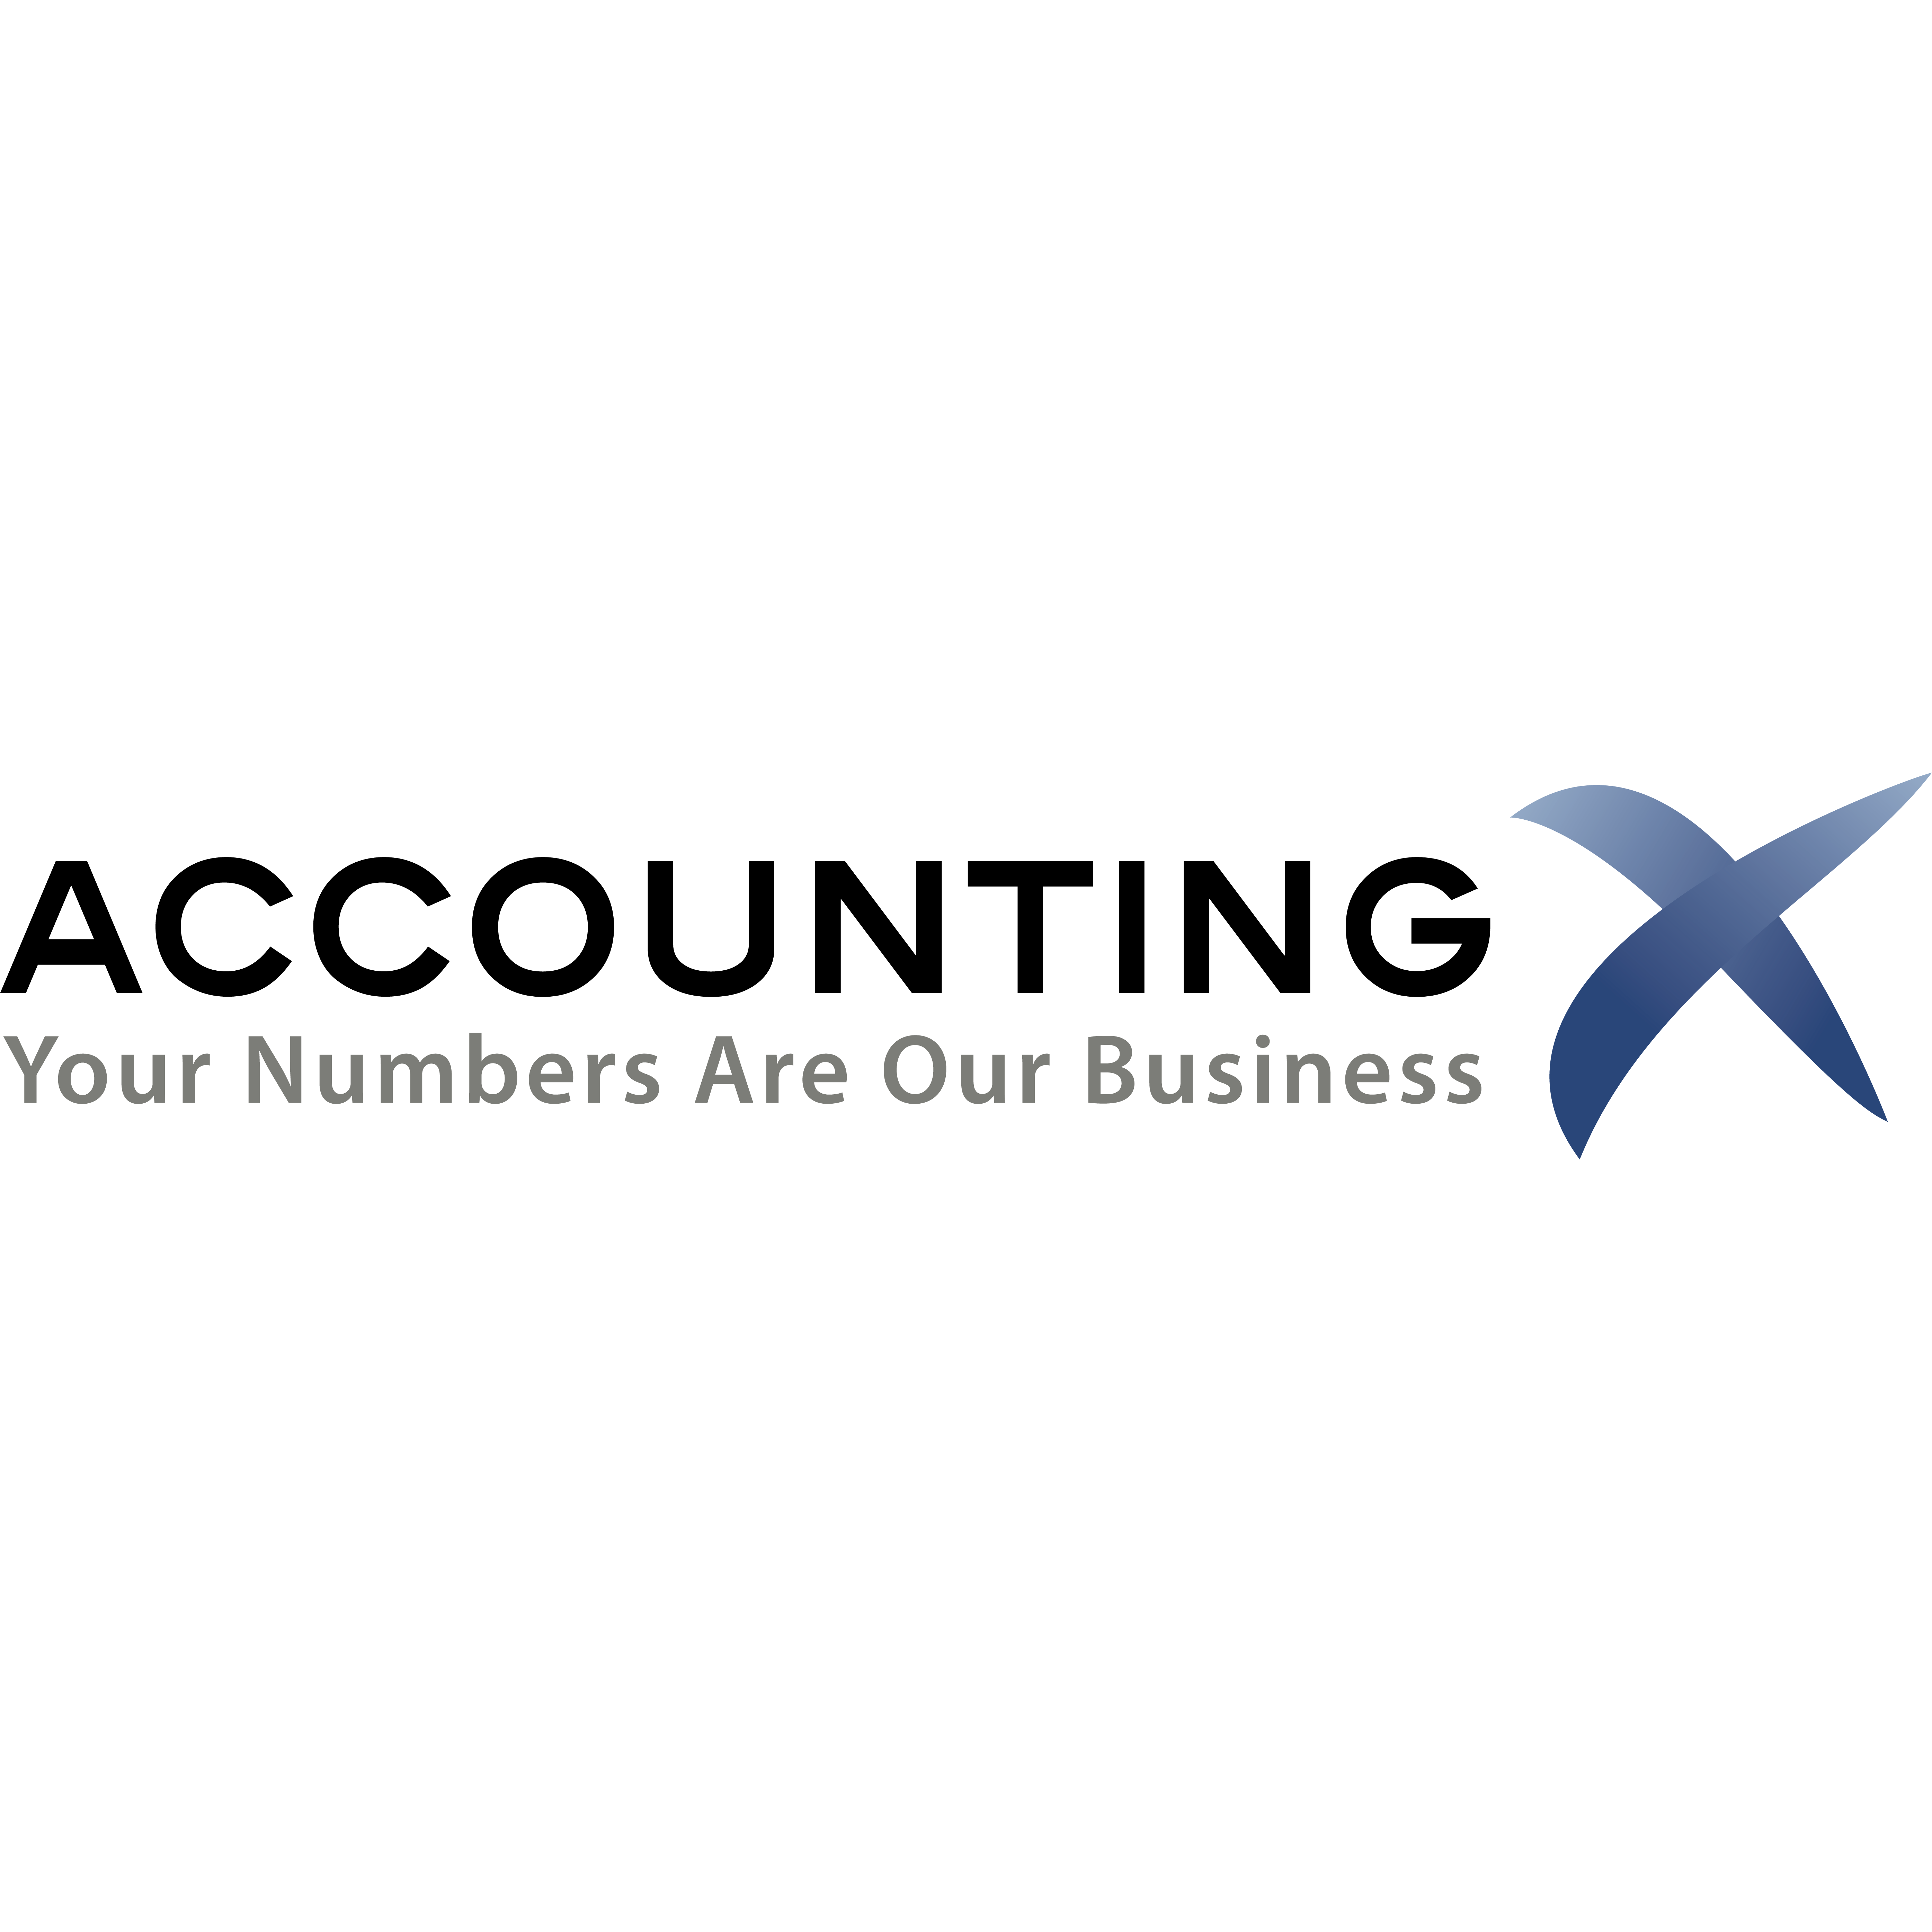 AccountingX